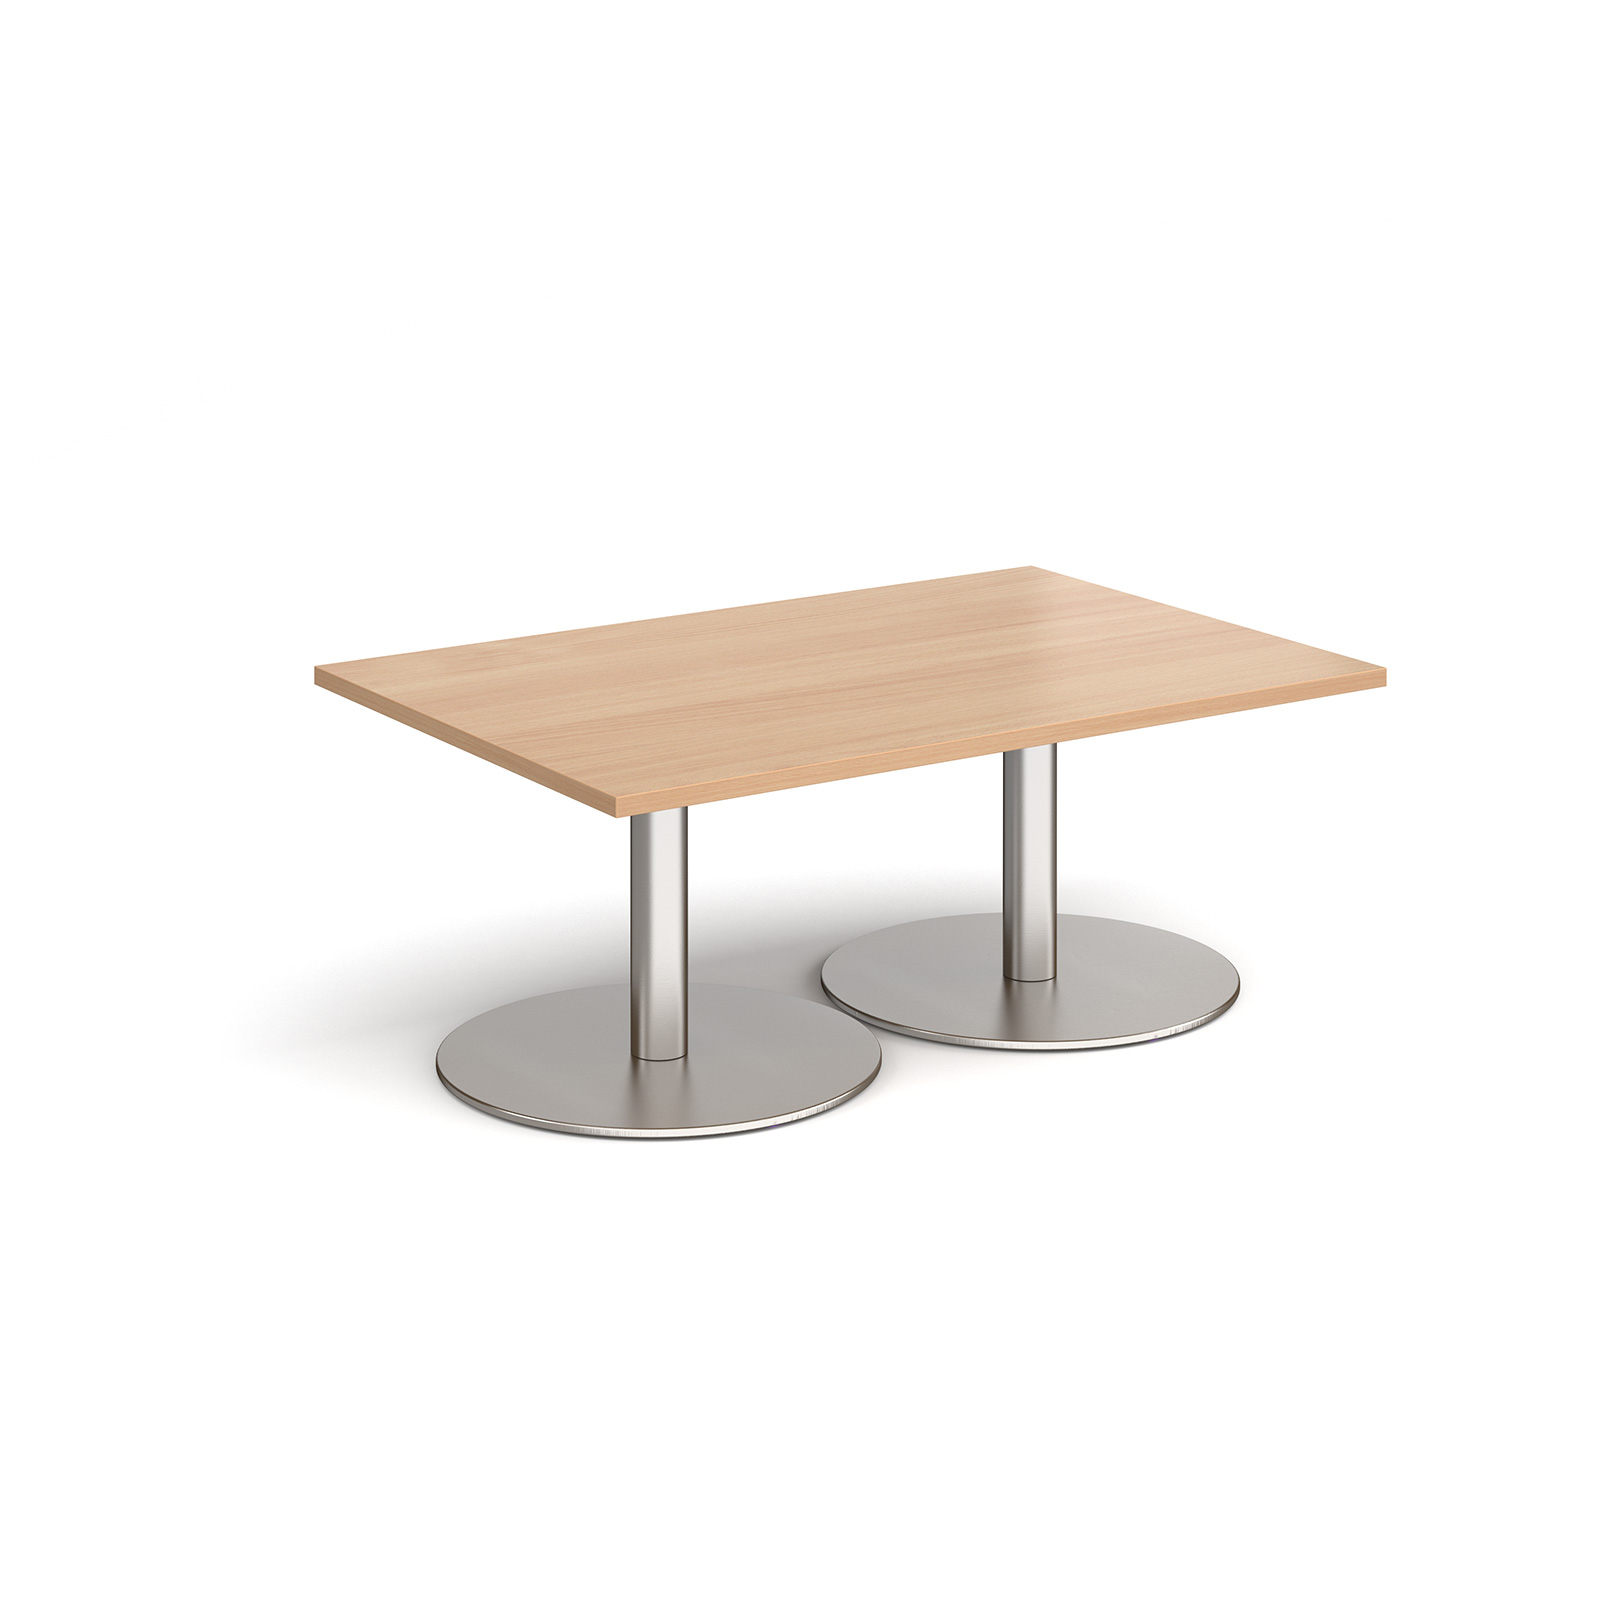 Monza rectangular coffee table with flat round bases